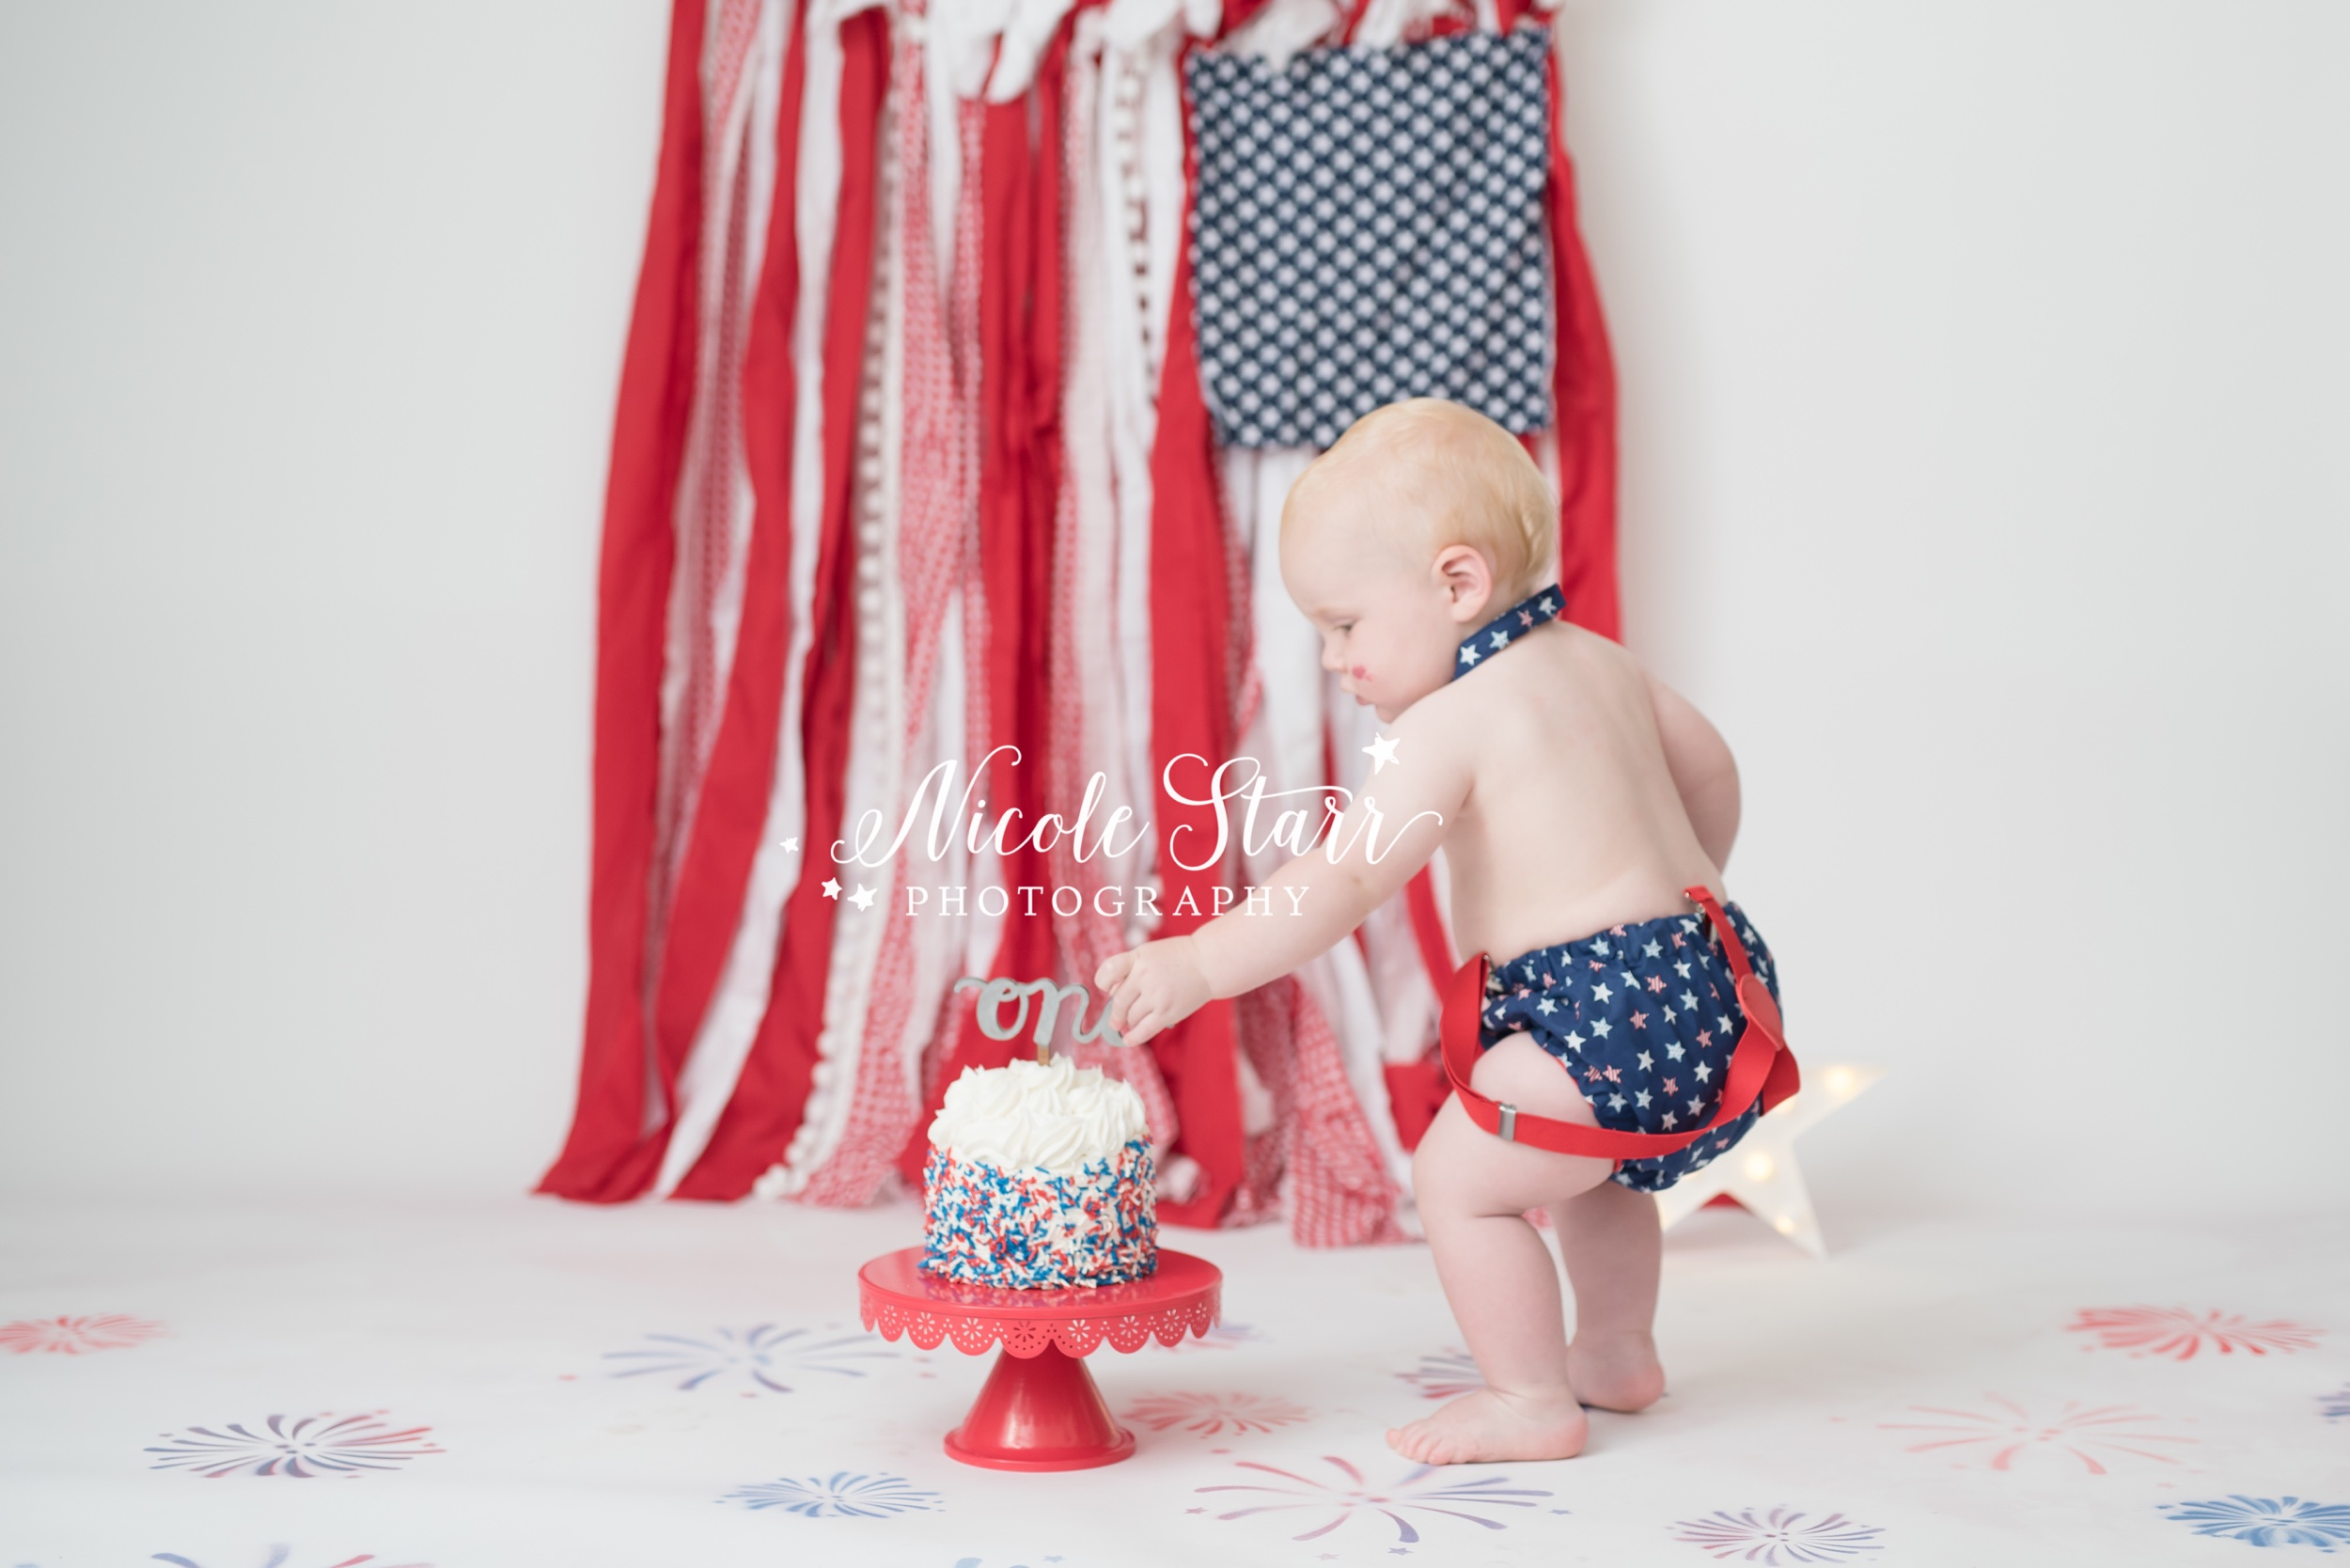 Nicole Starr Photography | Boston MA Cake smash photographer, Saratoga Springs NY cake smash photographer, Delmar NY cake smash photographer, Loudonville NY Cake smash photographer, New York cake smash photographer, cake smash photographer, patriotic cake smash photographer, red, white, and blue cake smash, Fourth of July, Fourth of July cake smash